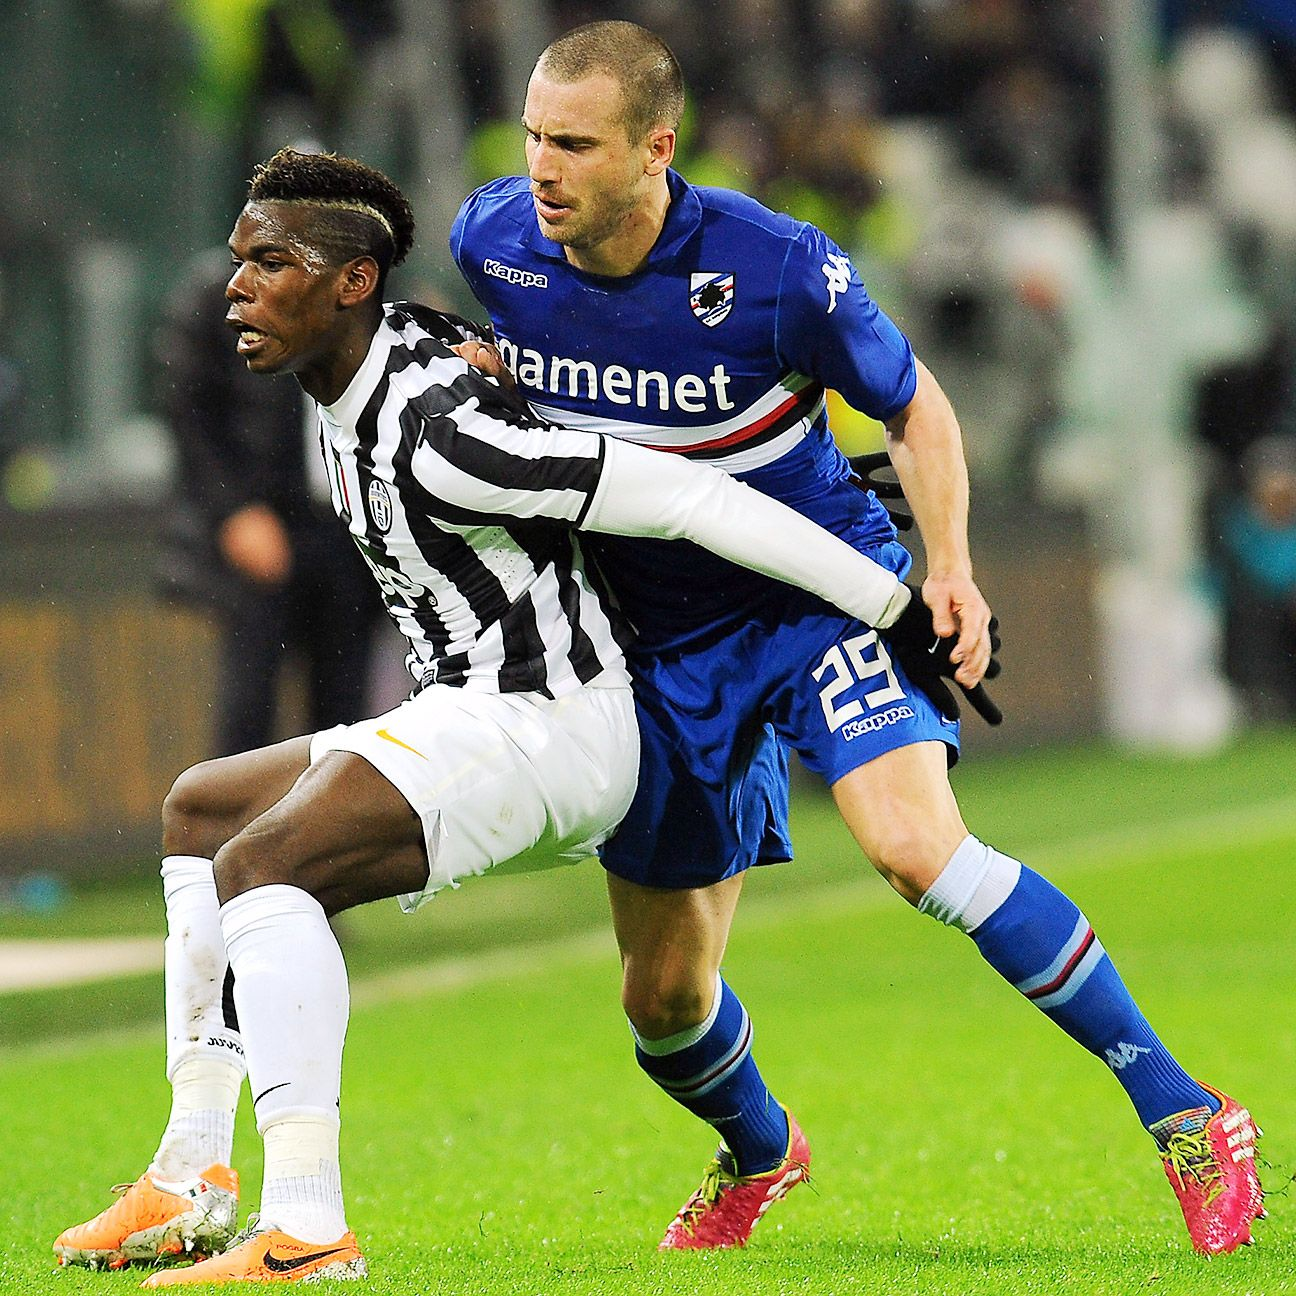 There will be little room for Paul Pogba and Juventus to work with when they square off on Sunday versus Sampdoria.